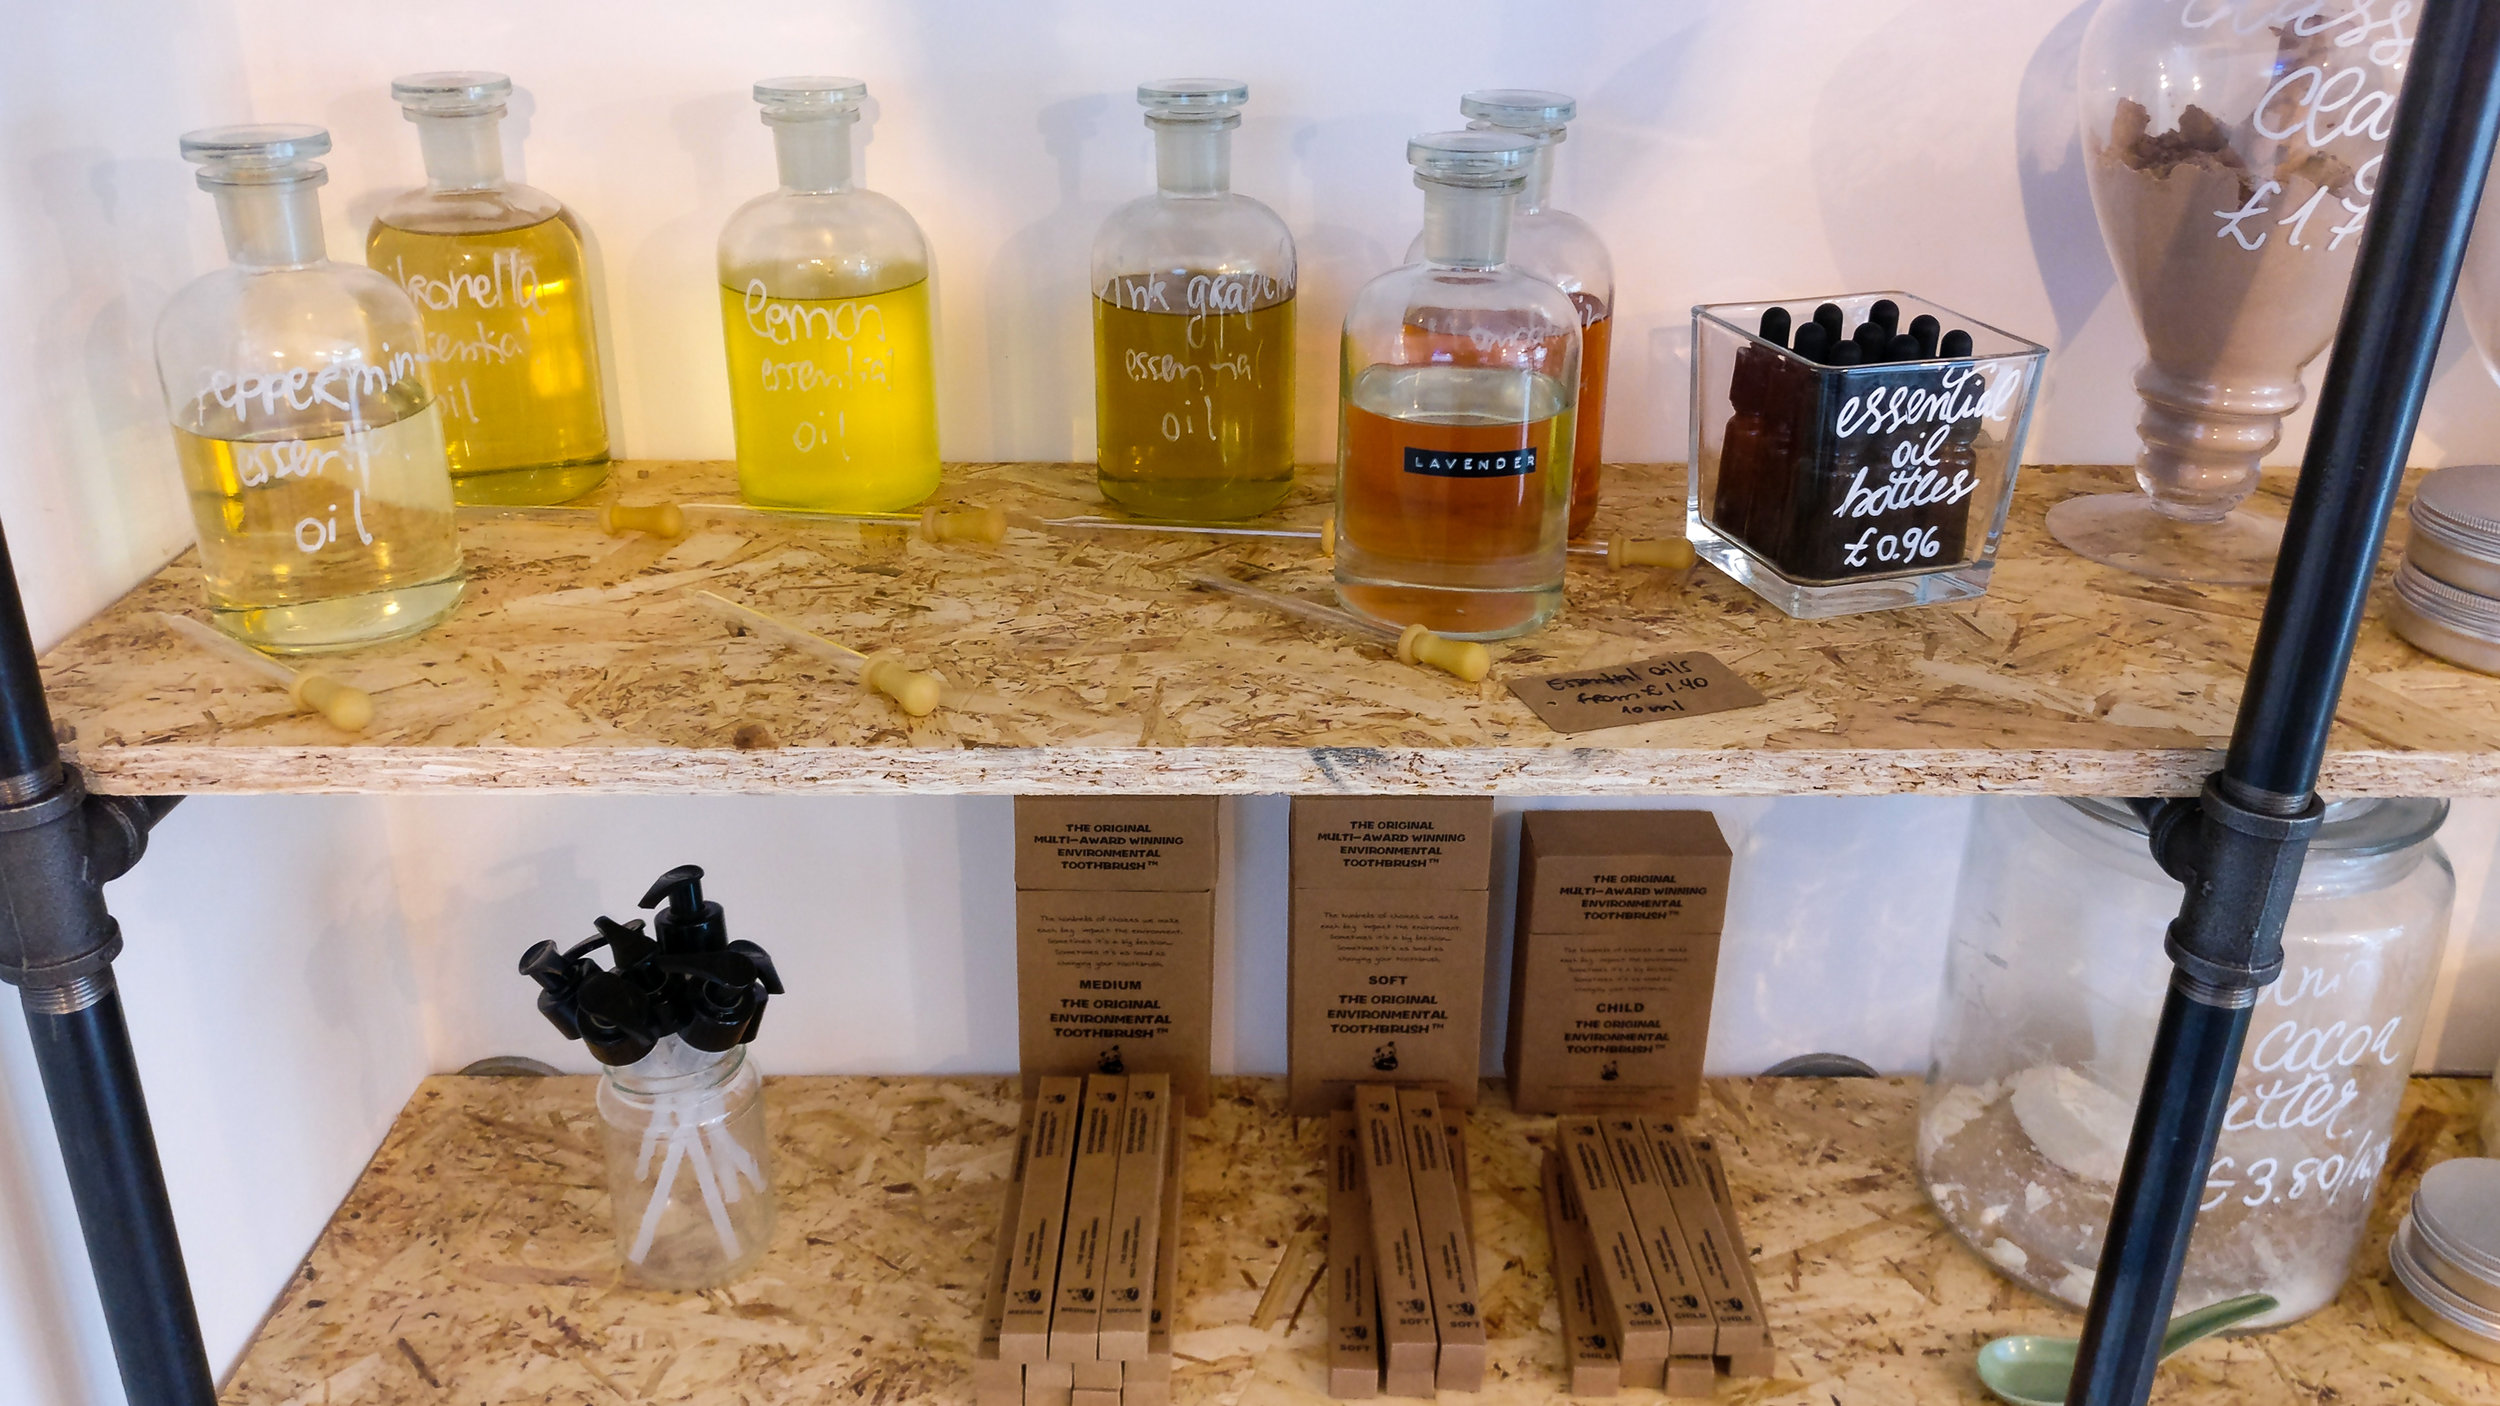 A selection of essential oils and plastic-free toiletries.